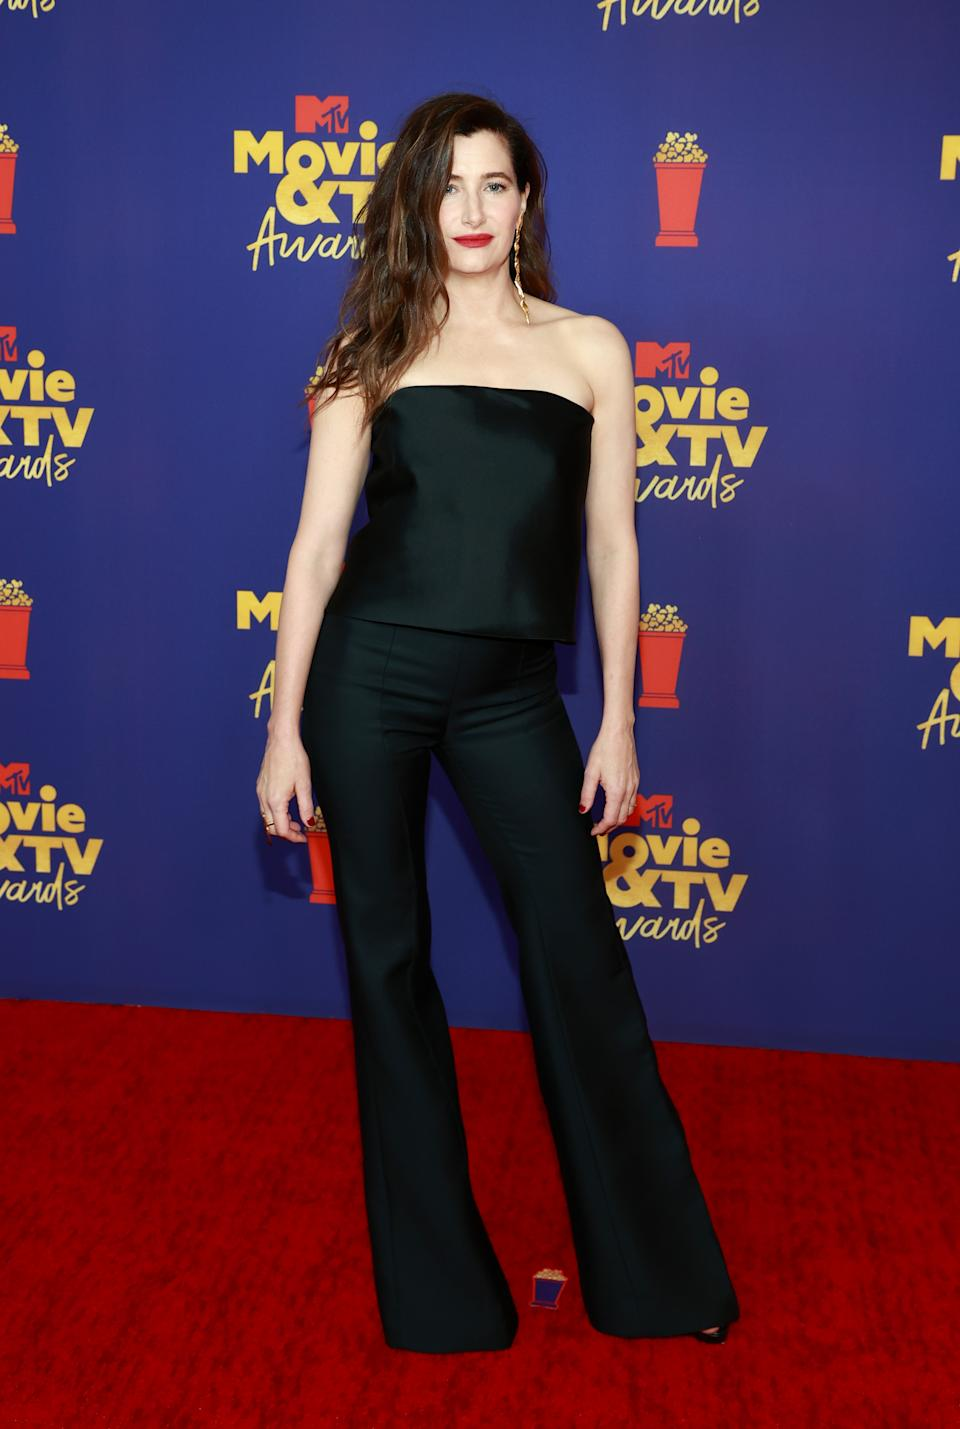 LOS ANGELES, CALIFORNIA - MAY 16: Kathryn Hahn attends the 2021 MTV Movie & TV Awards at the Hollywood Palladium on May 16, 2021 in Los Angeles, California. (Photo by Matt Winkelmeyer/2021 MTV Movie and TV Awards/Getty Images for MTV/ViacomCBS)